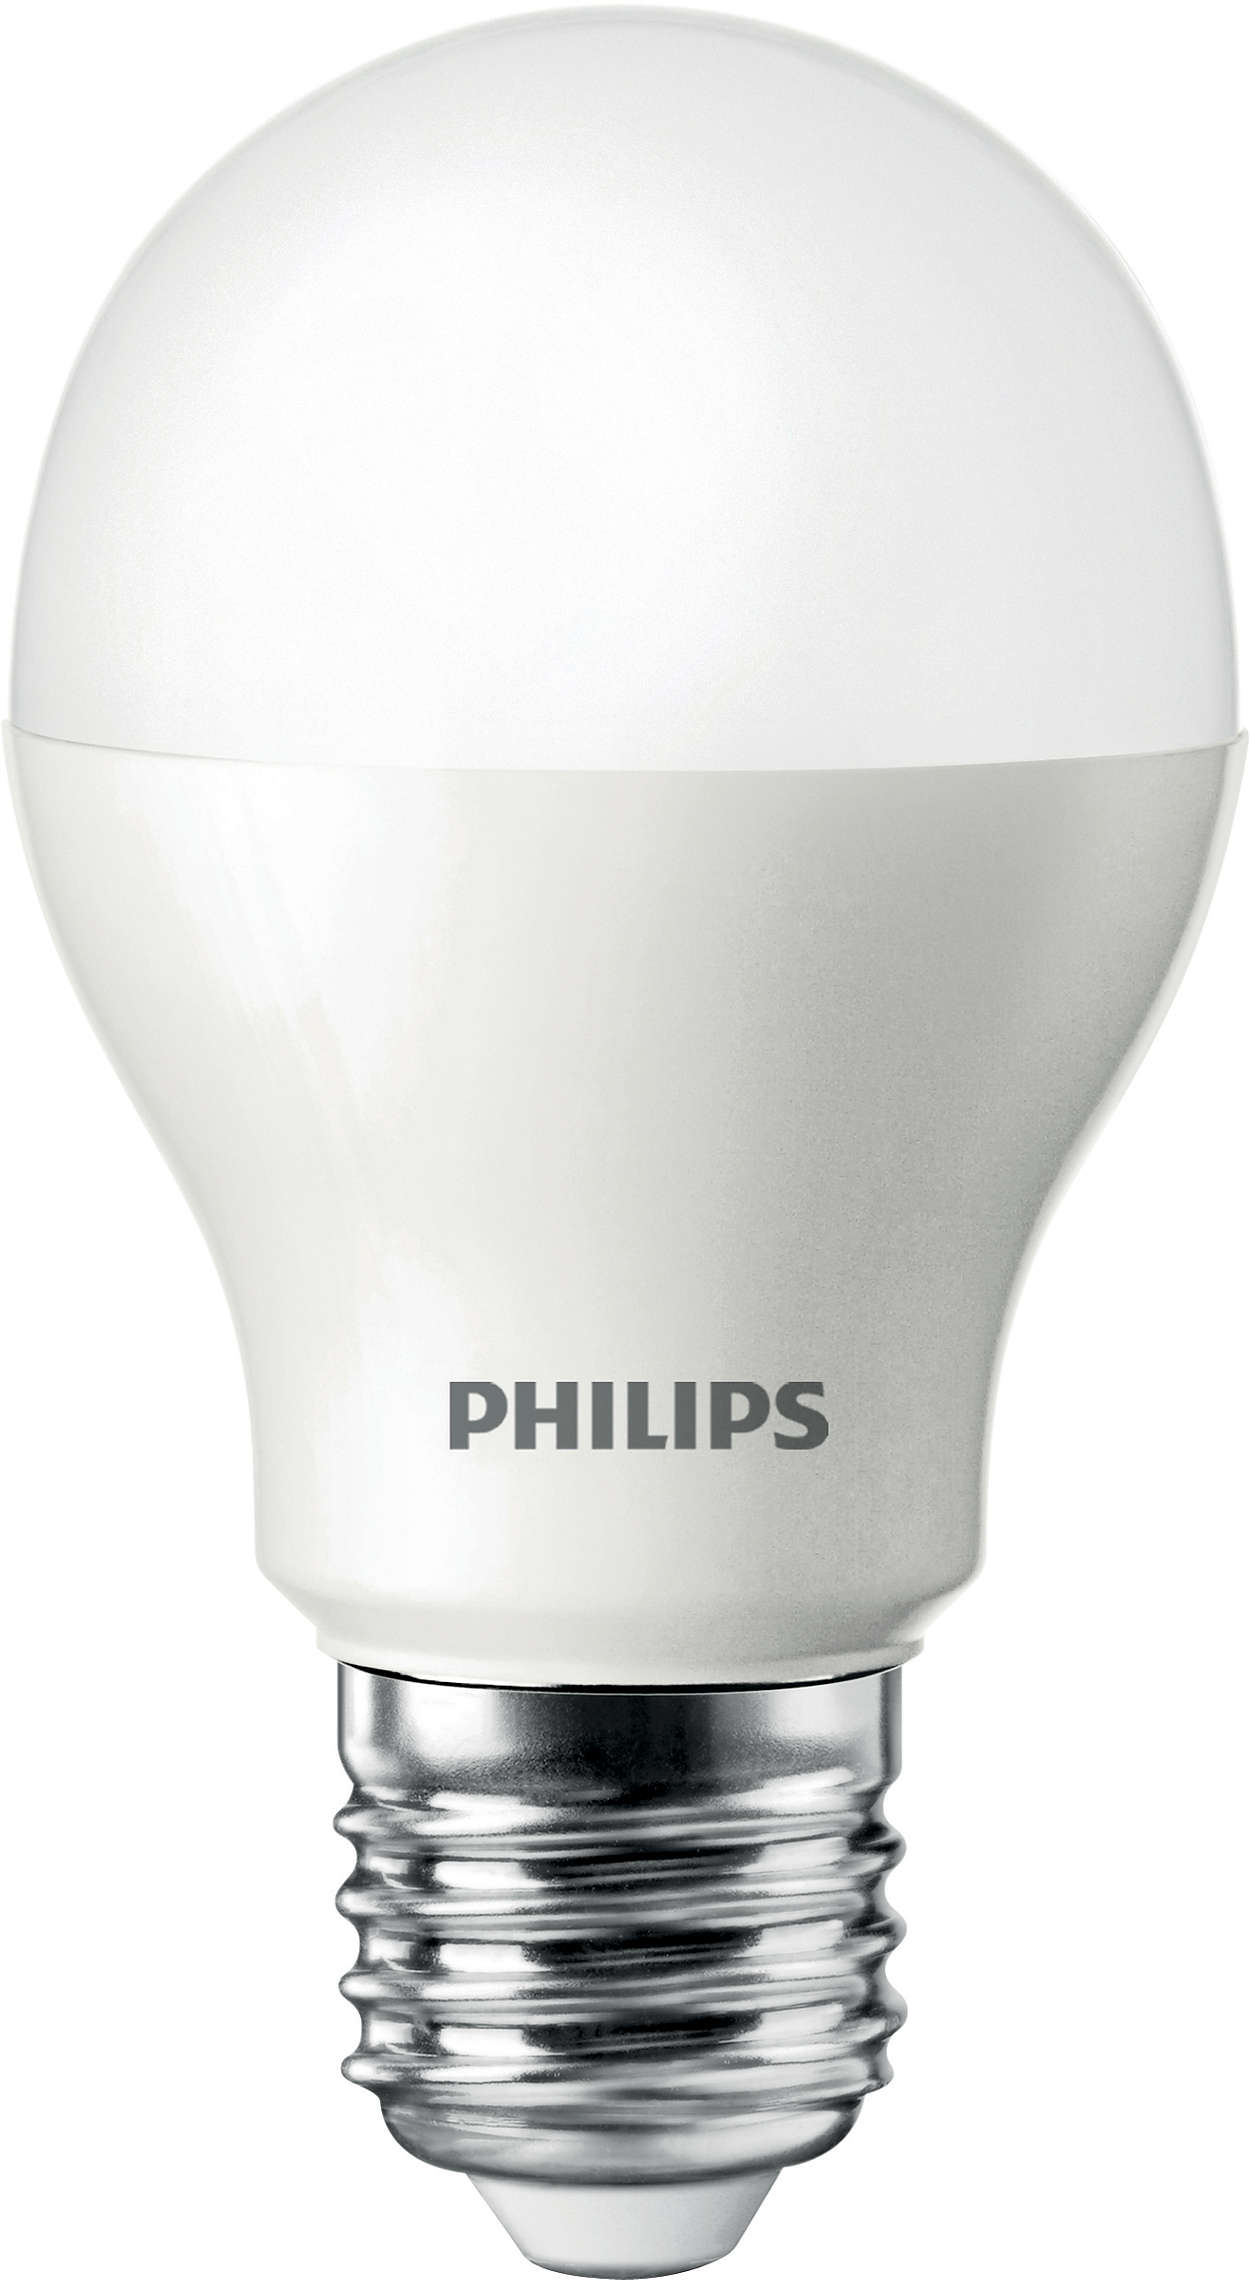 Led l mpada 8718696463109 philips for Lampada led gu10